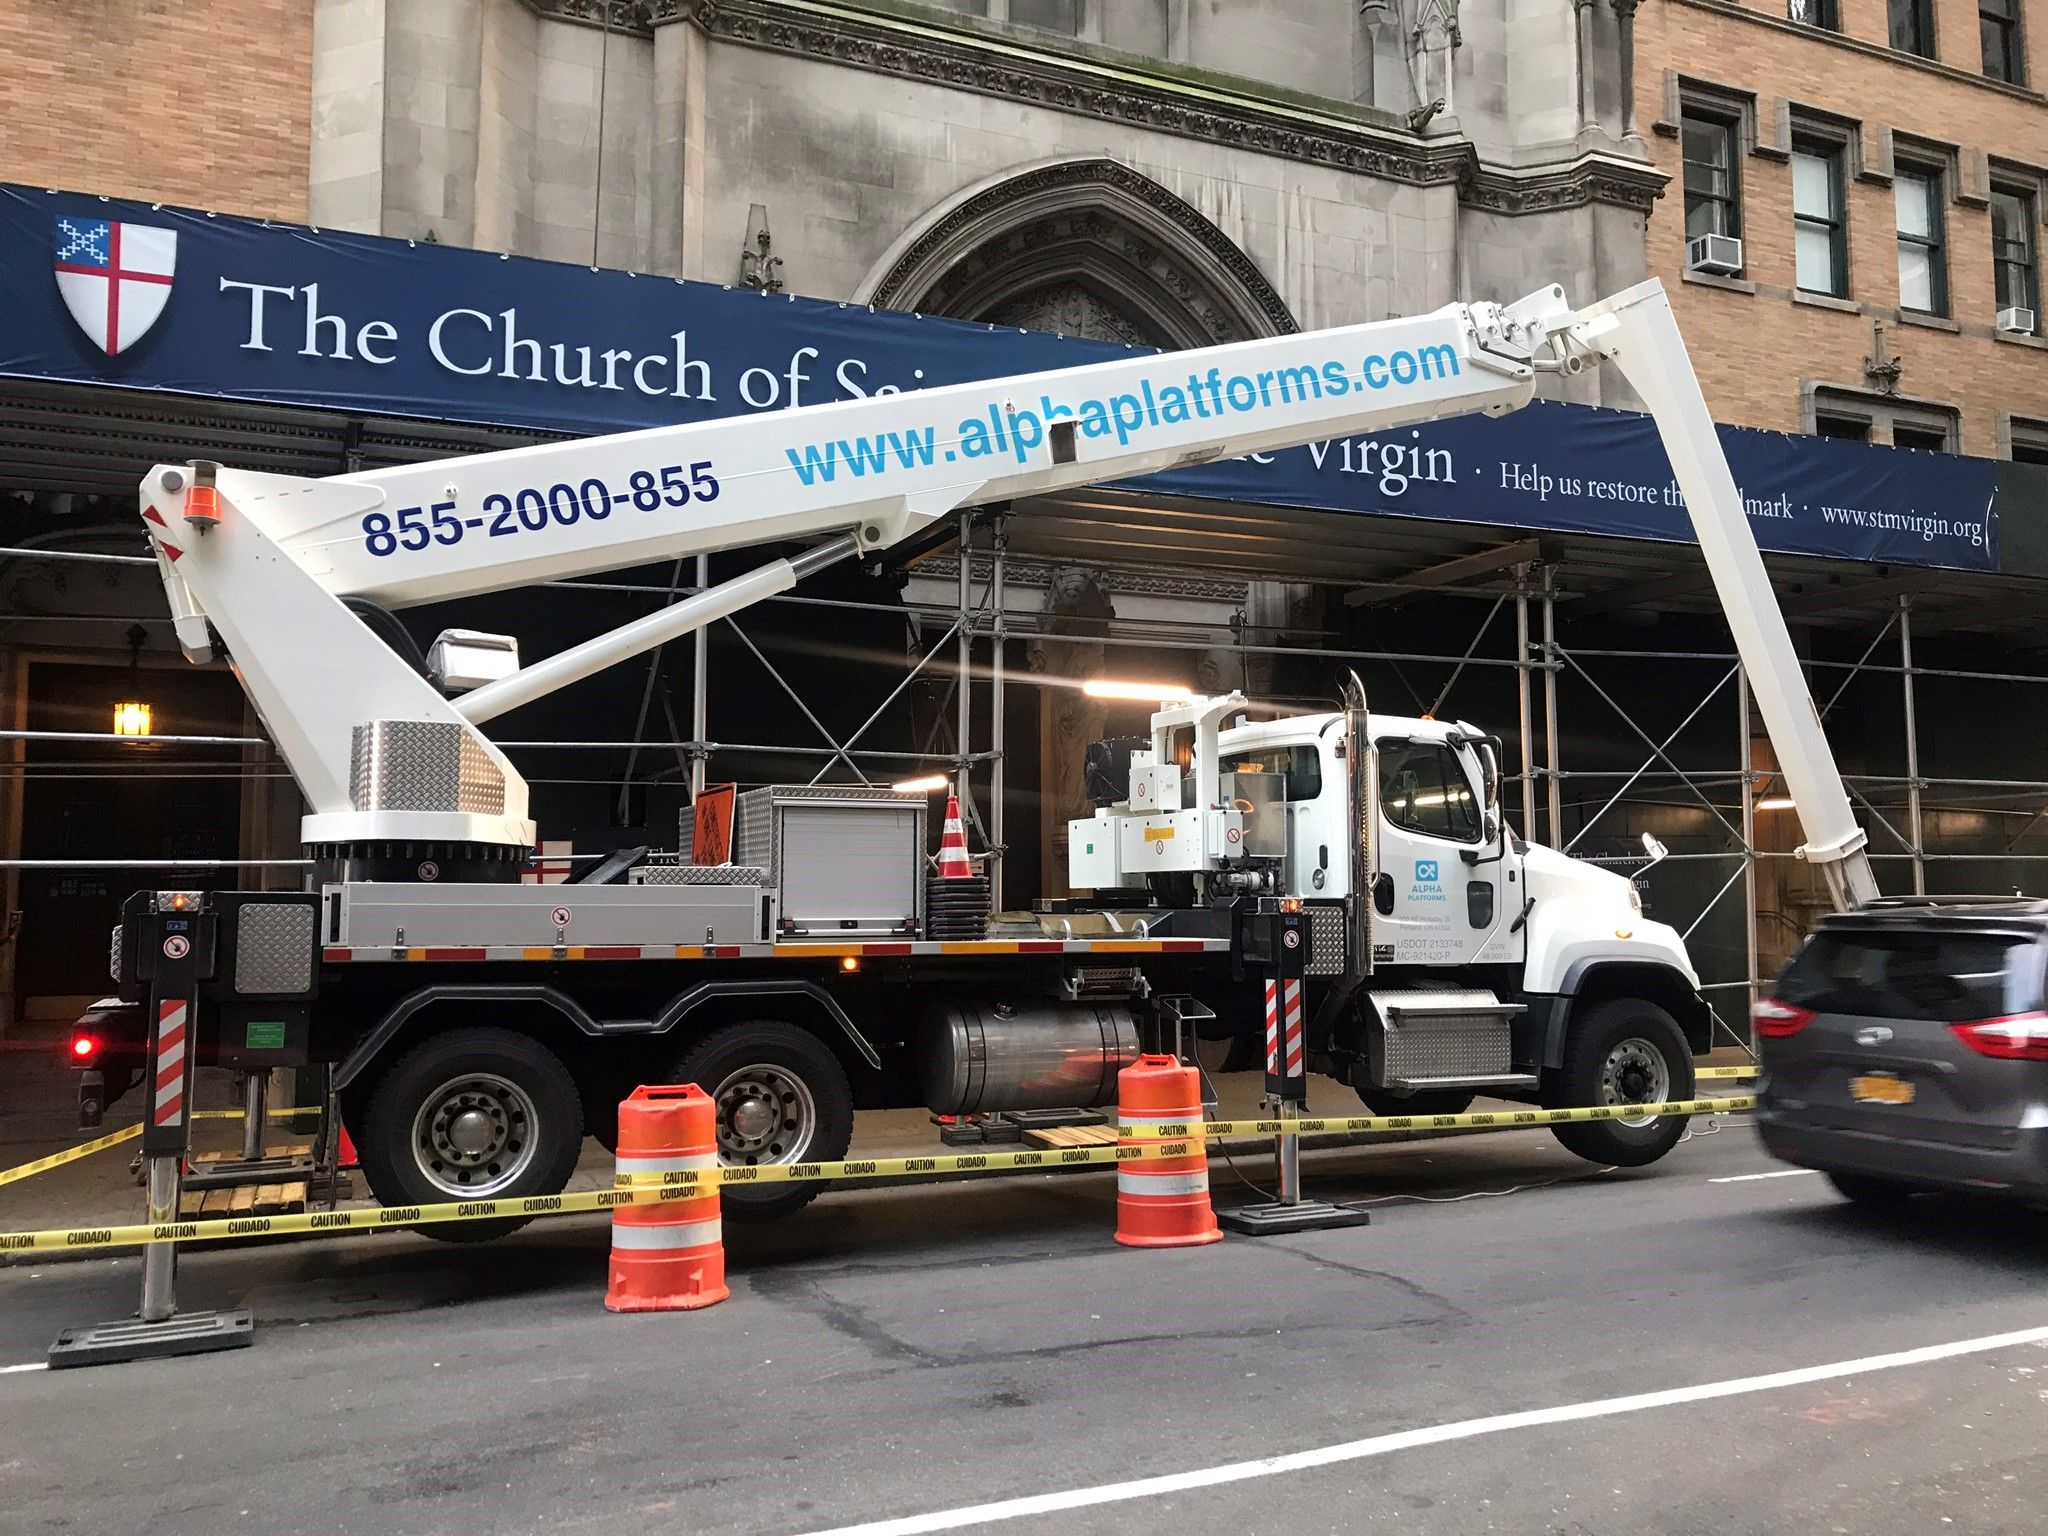 Saturday, April 28, 2018, the lift our architect and his team will use to inspect the church facade.  Photo by the Rector